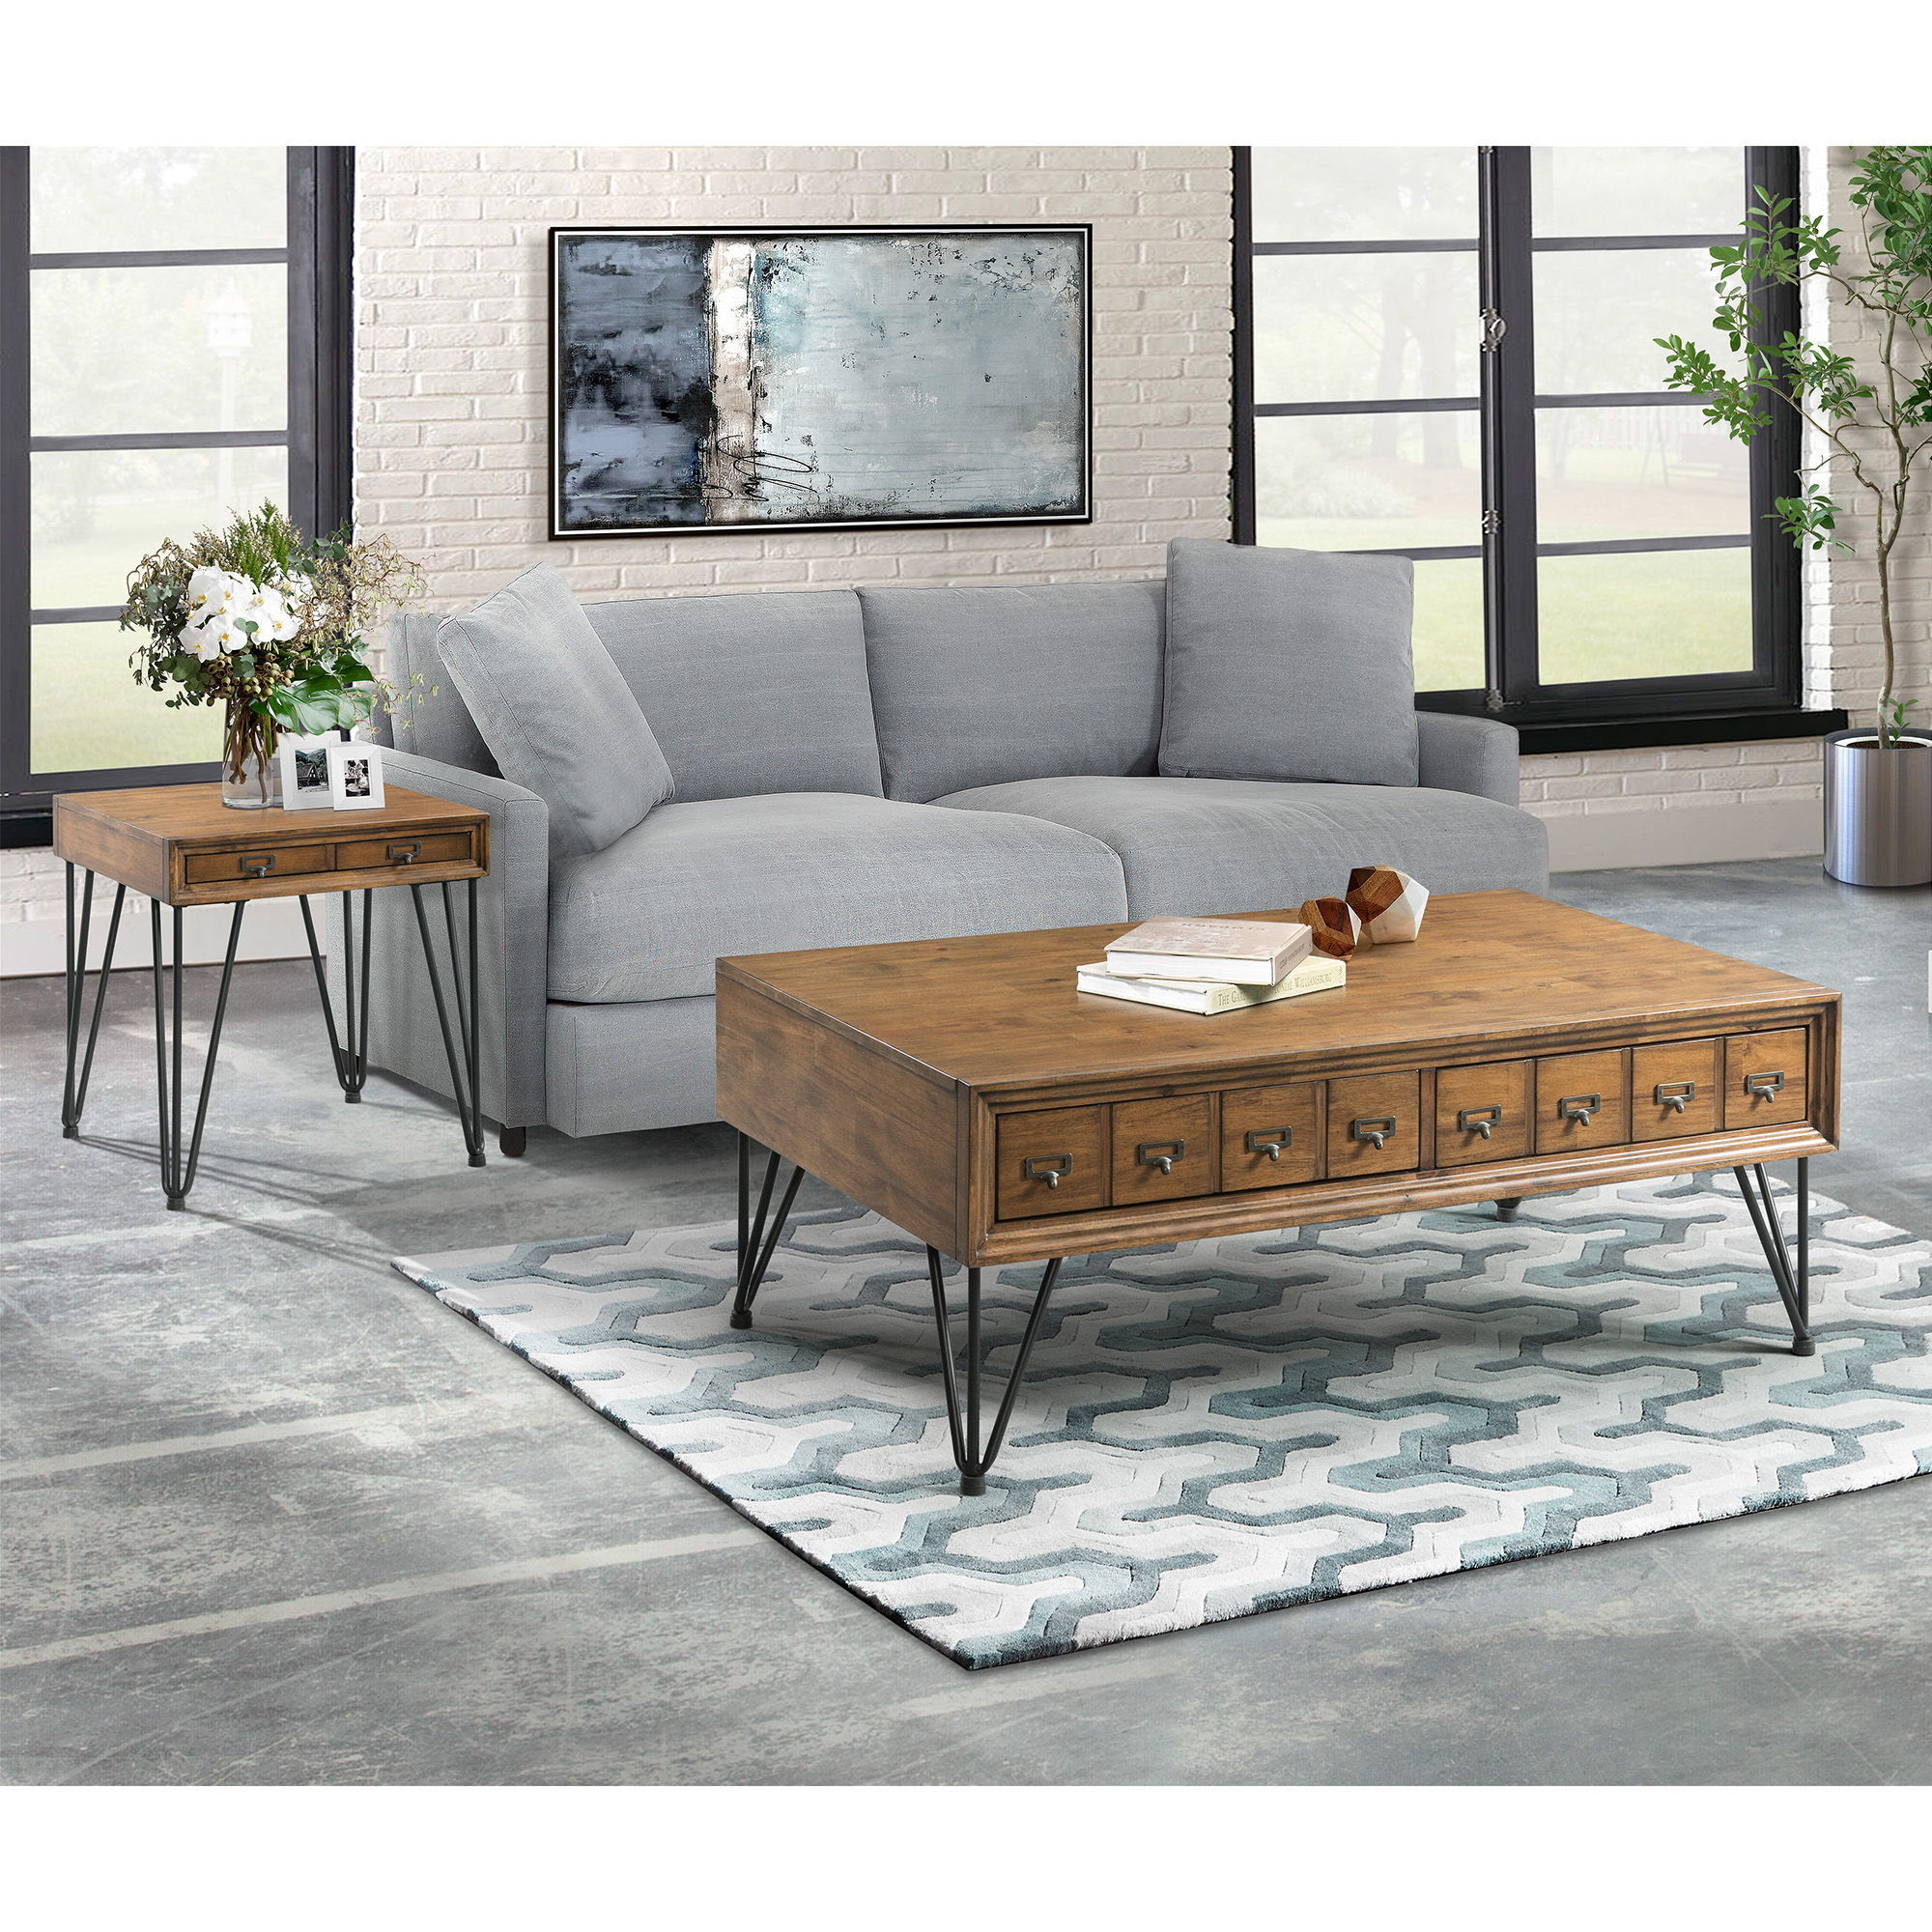 Picket House Furnishings Tanner 2PC Occasional Table Set-Coffee Table and End Table